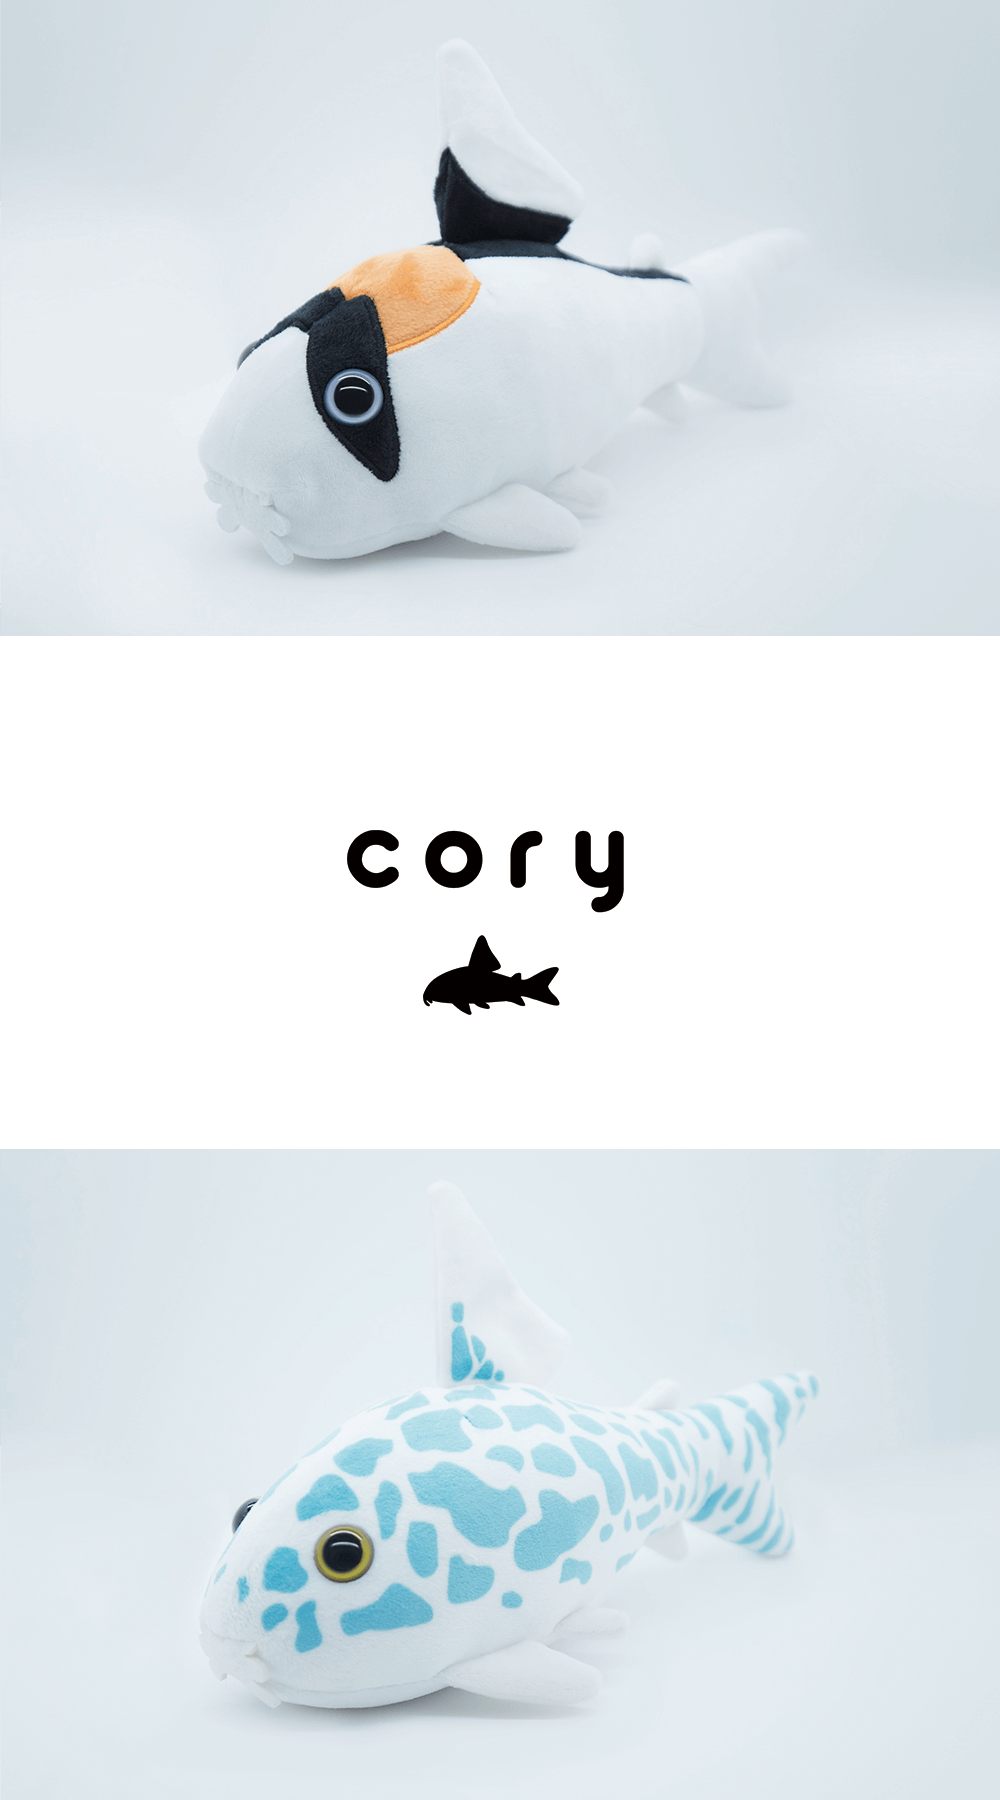 cory<br />TOY PRODUCE<br />https://corydoras.amebaownd.com/